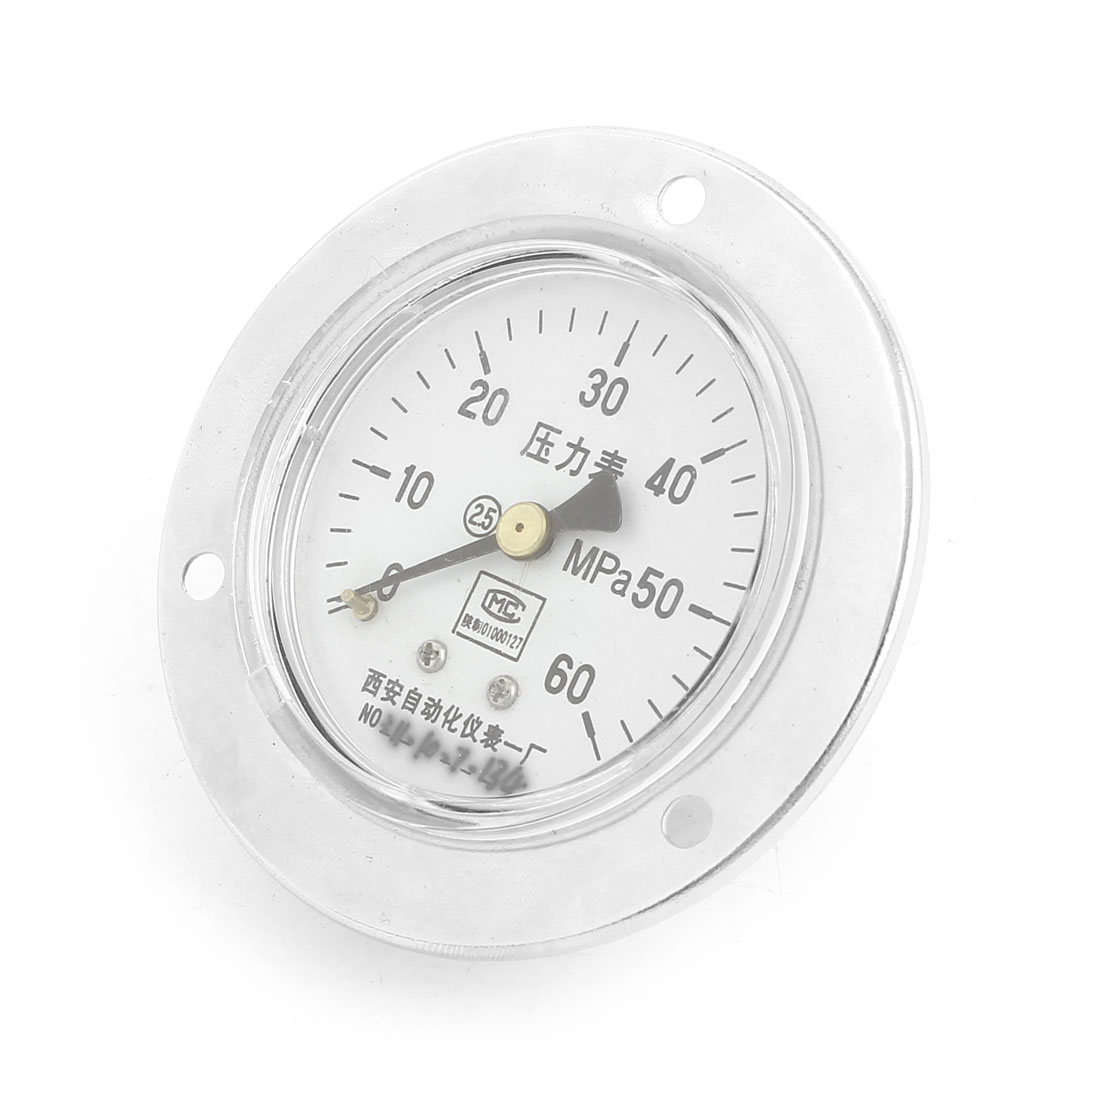 0-60MPa Vertical Universal Glow Oil Gas Air Vacuum Pressure Meter Gauge 60mm